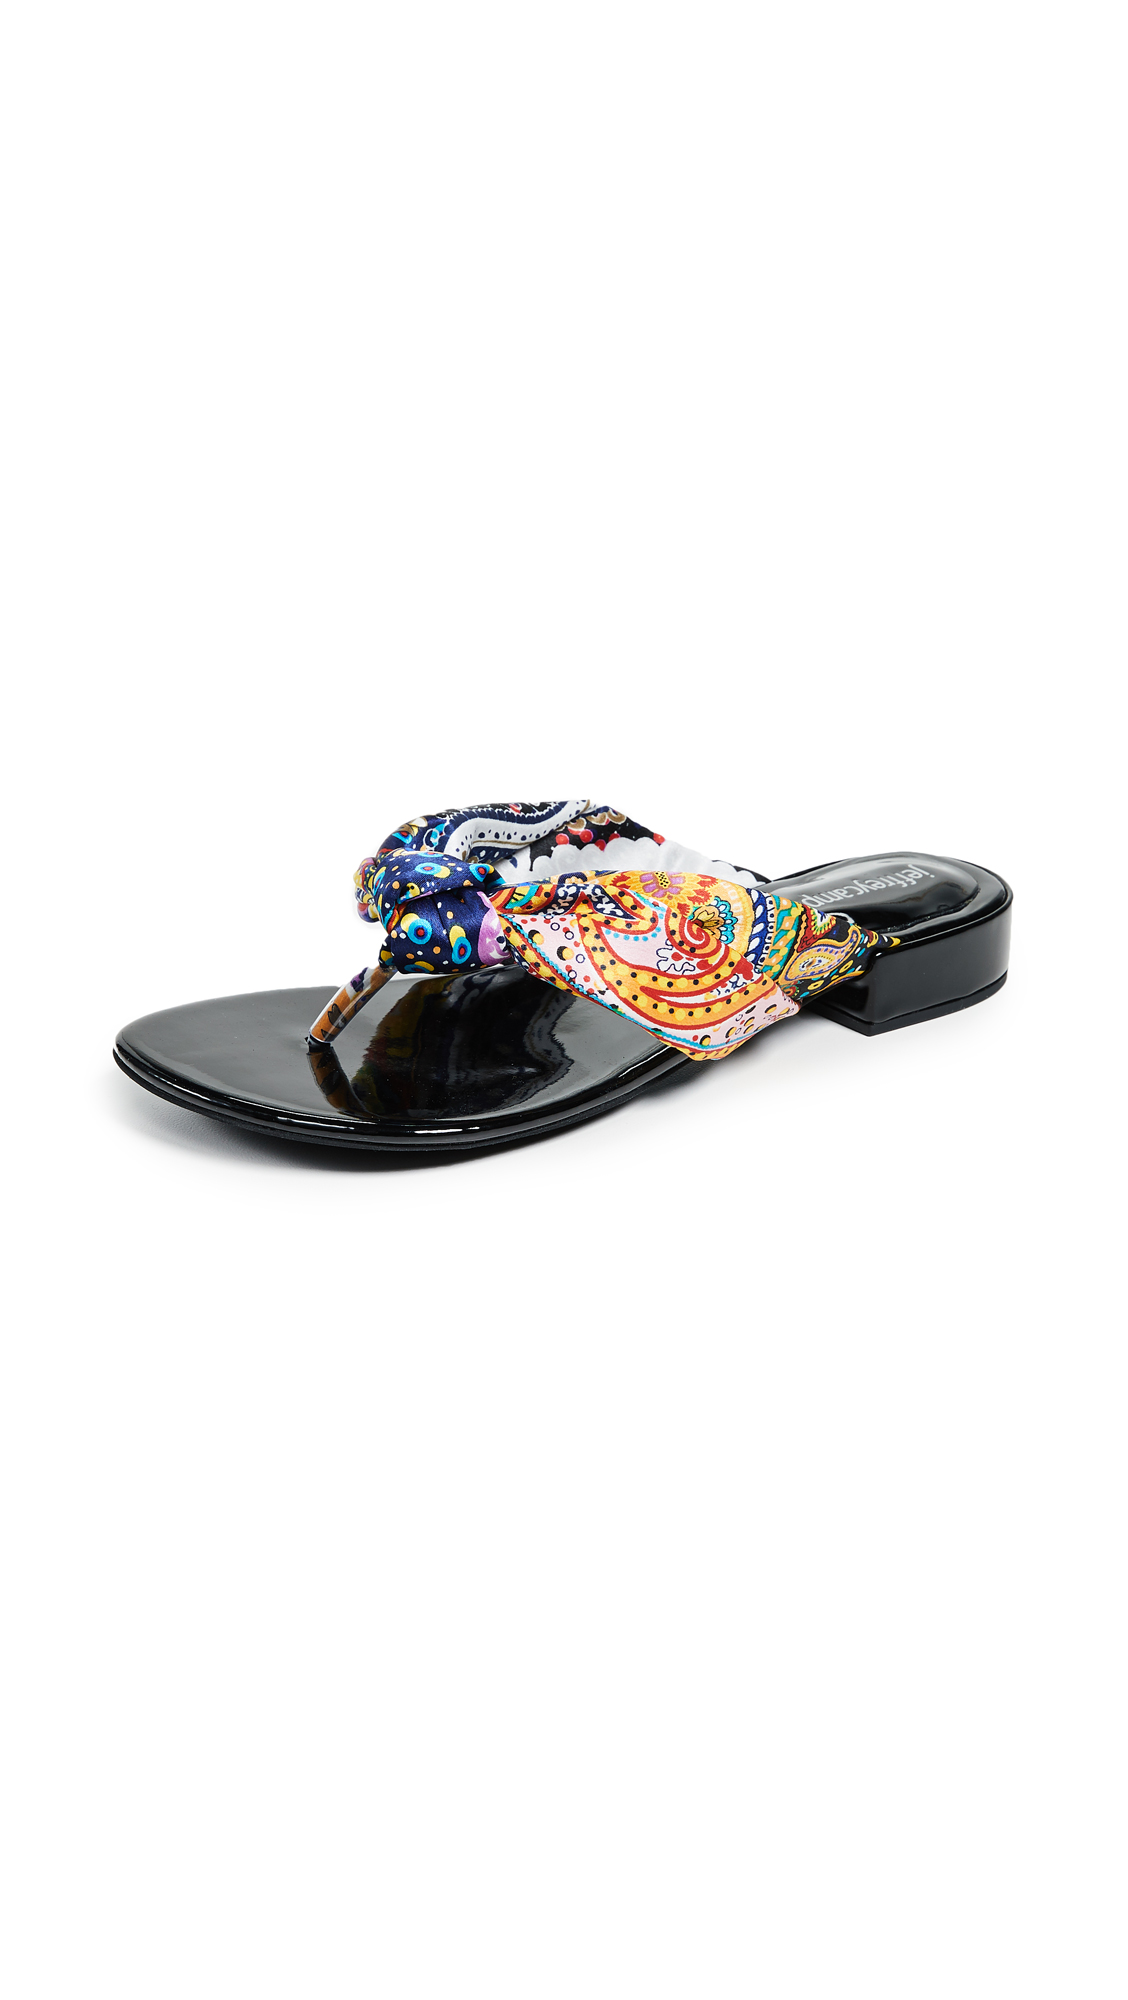 Jeffrey Campbell Tampa Chic Flop Flops - Black/Multi